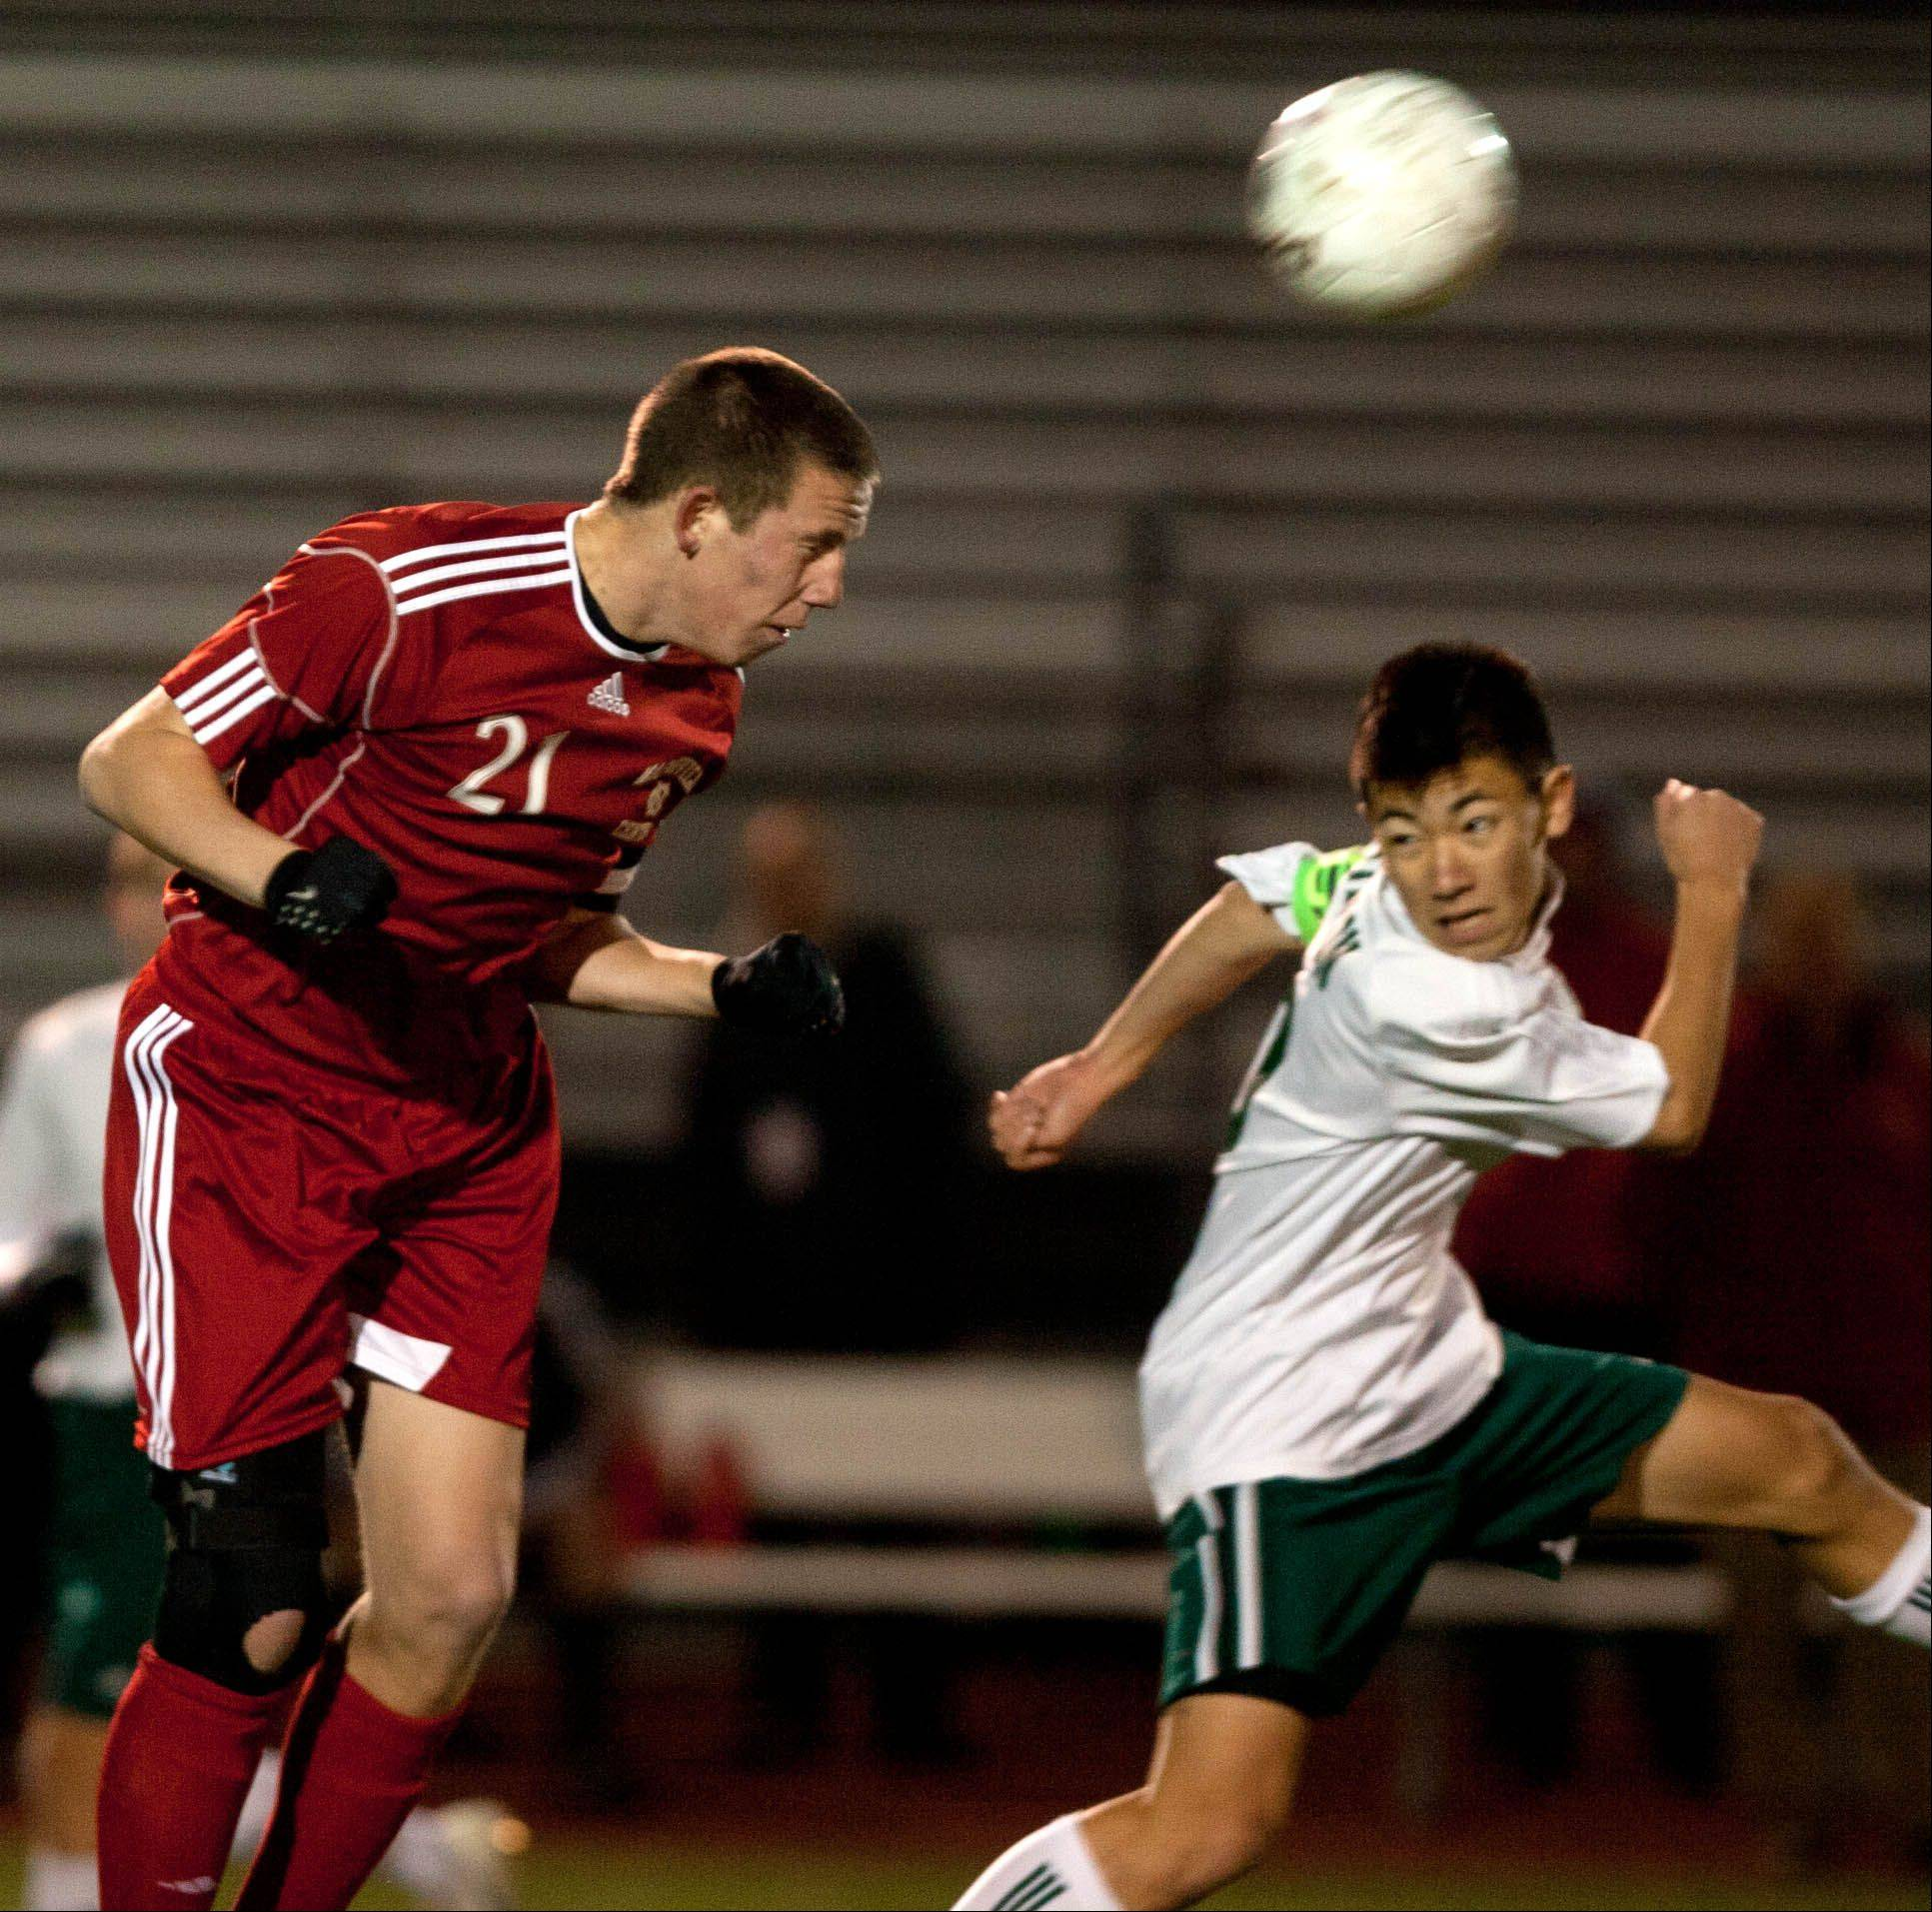 Naperville Central's Jack Patrick, left, battles Stevenson's Toshiki Niimi, right, during the boys 3A state semifinal soccer match held at Lincoln-Way North High School.